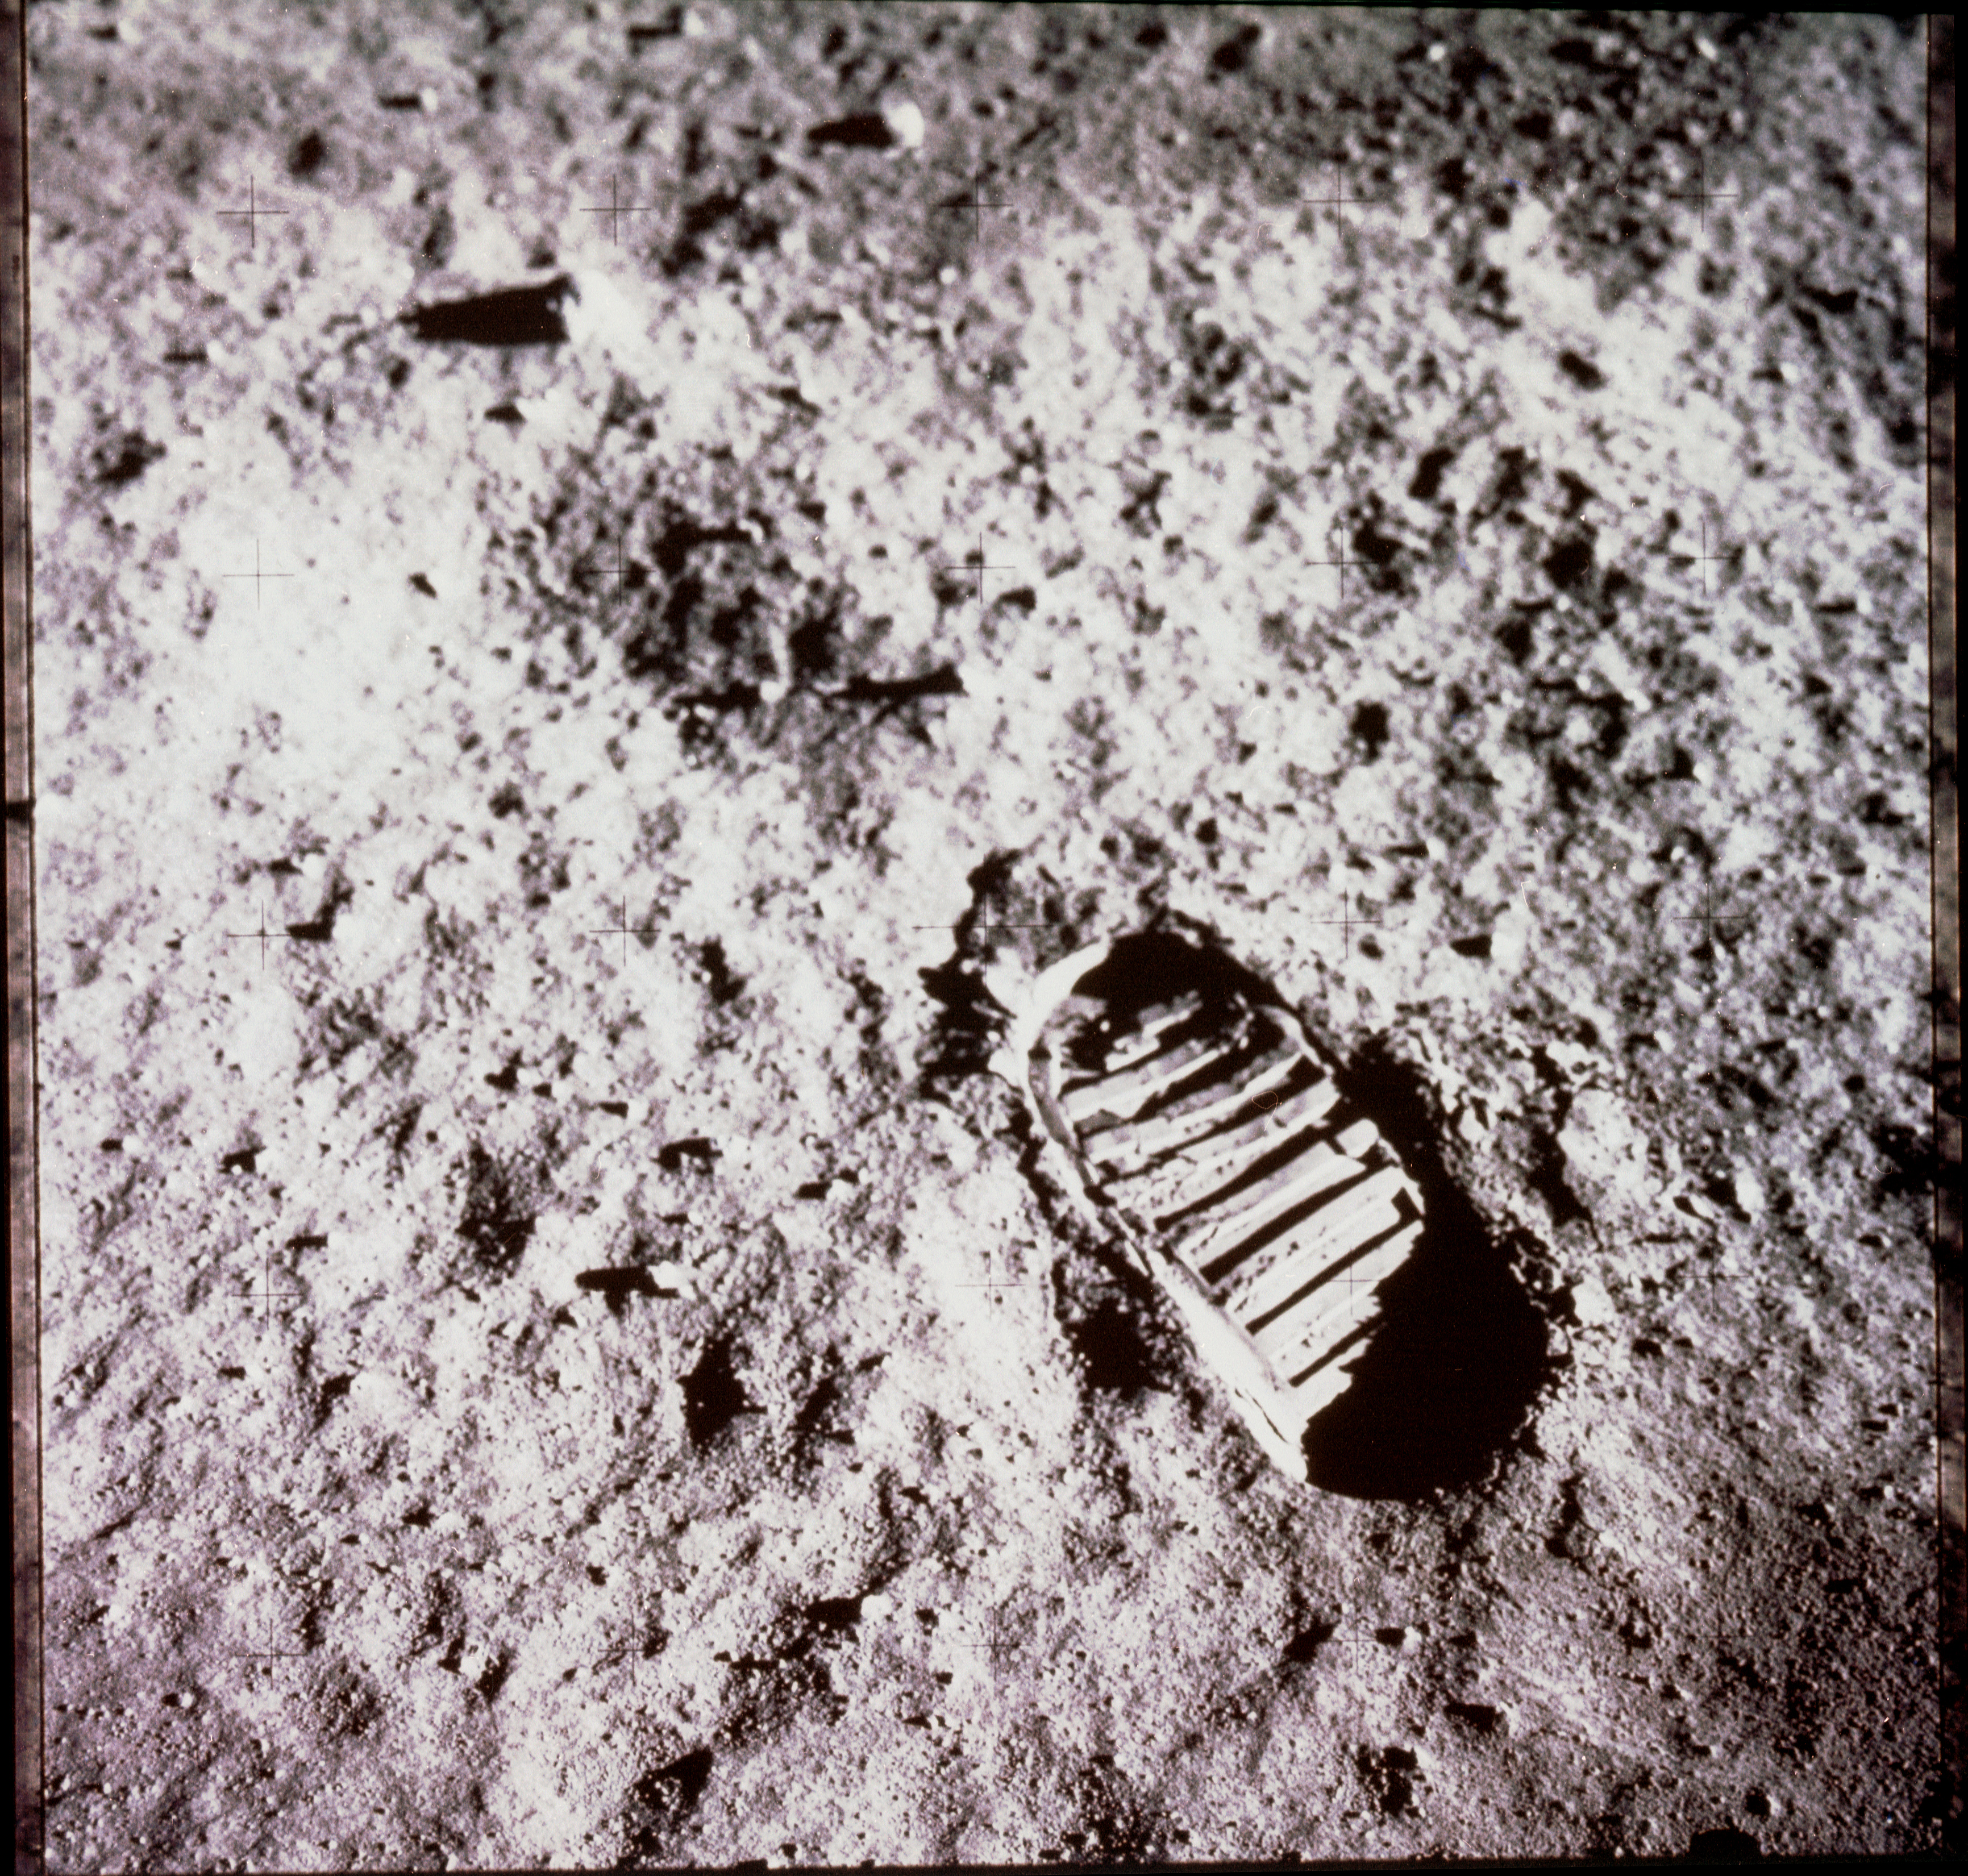 neil armstrong footprint on the moon - photo #12